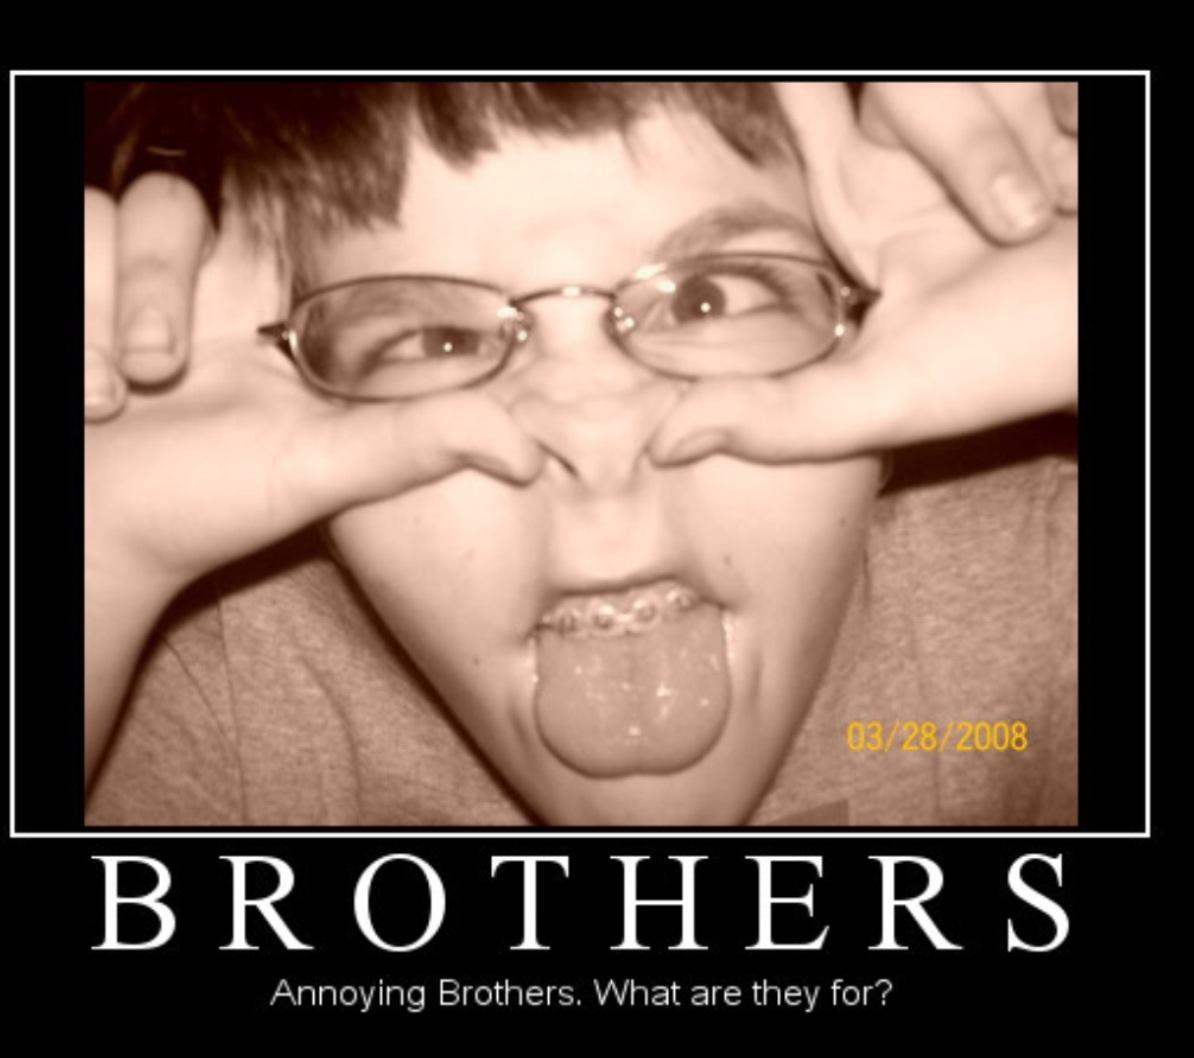 What type of annoying are your brothers?